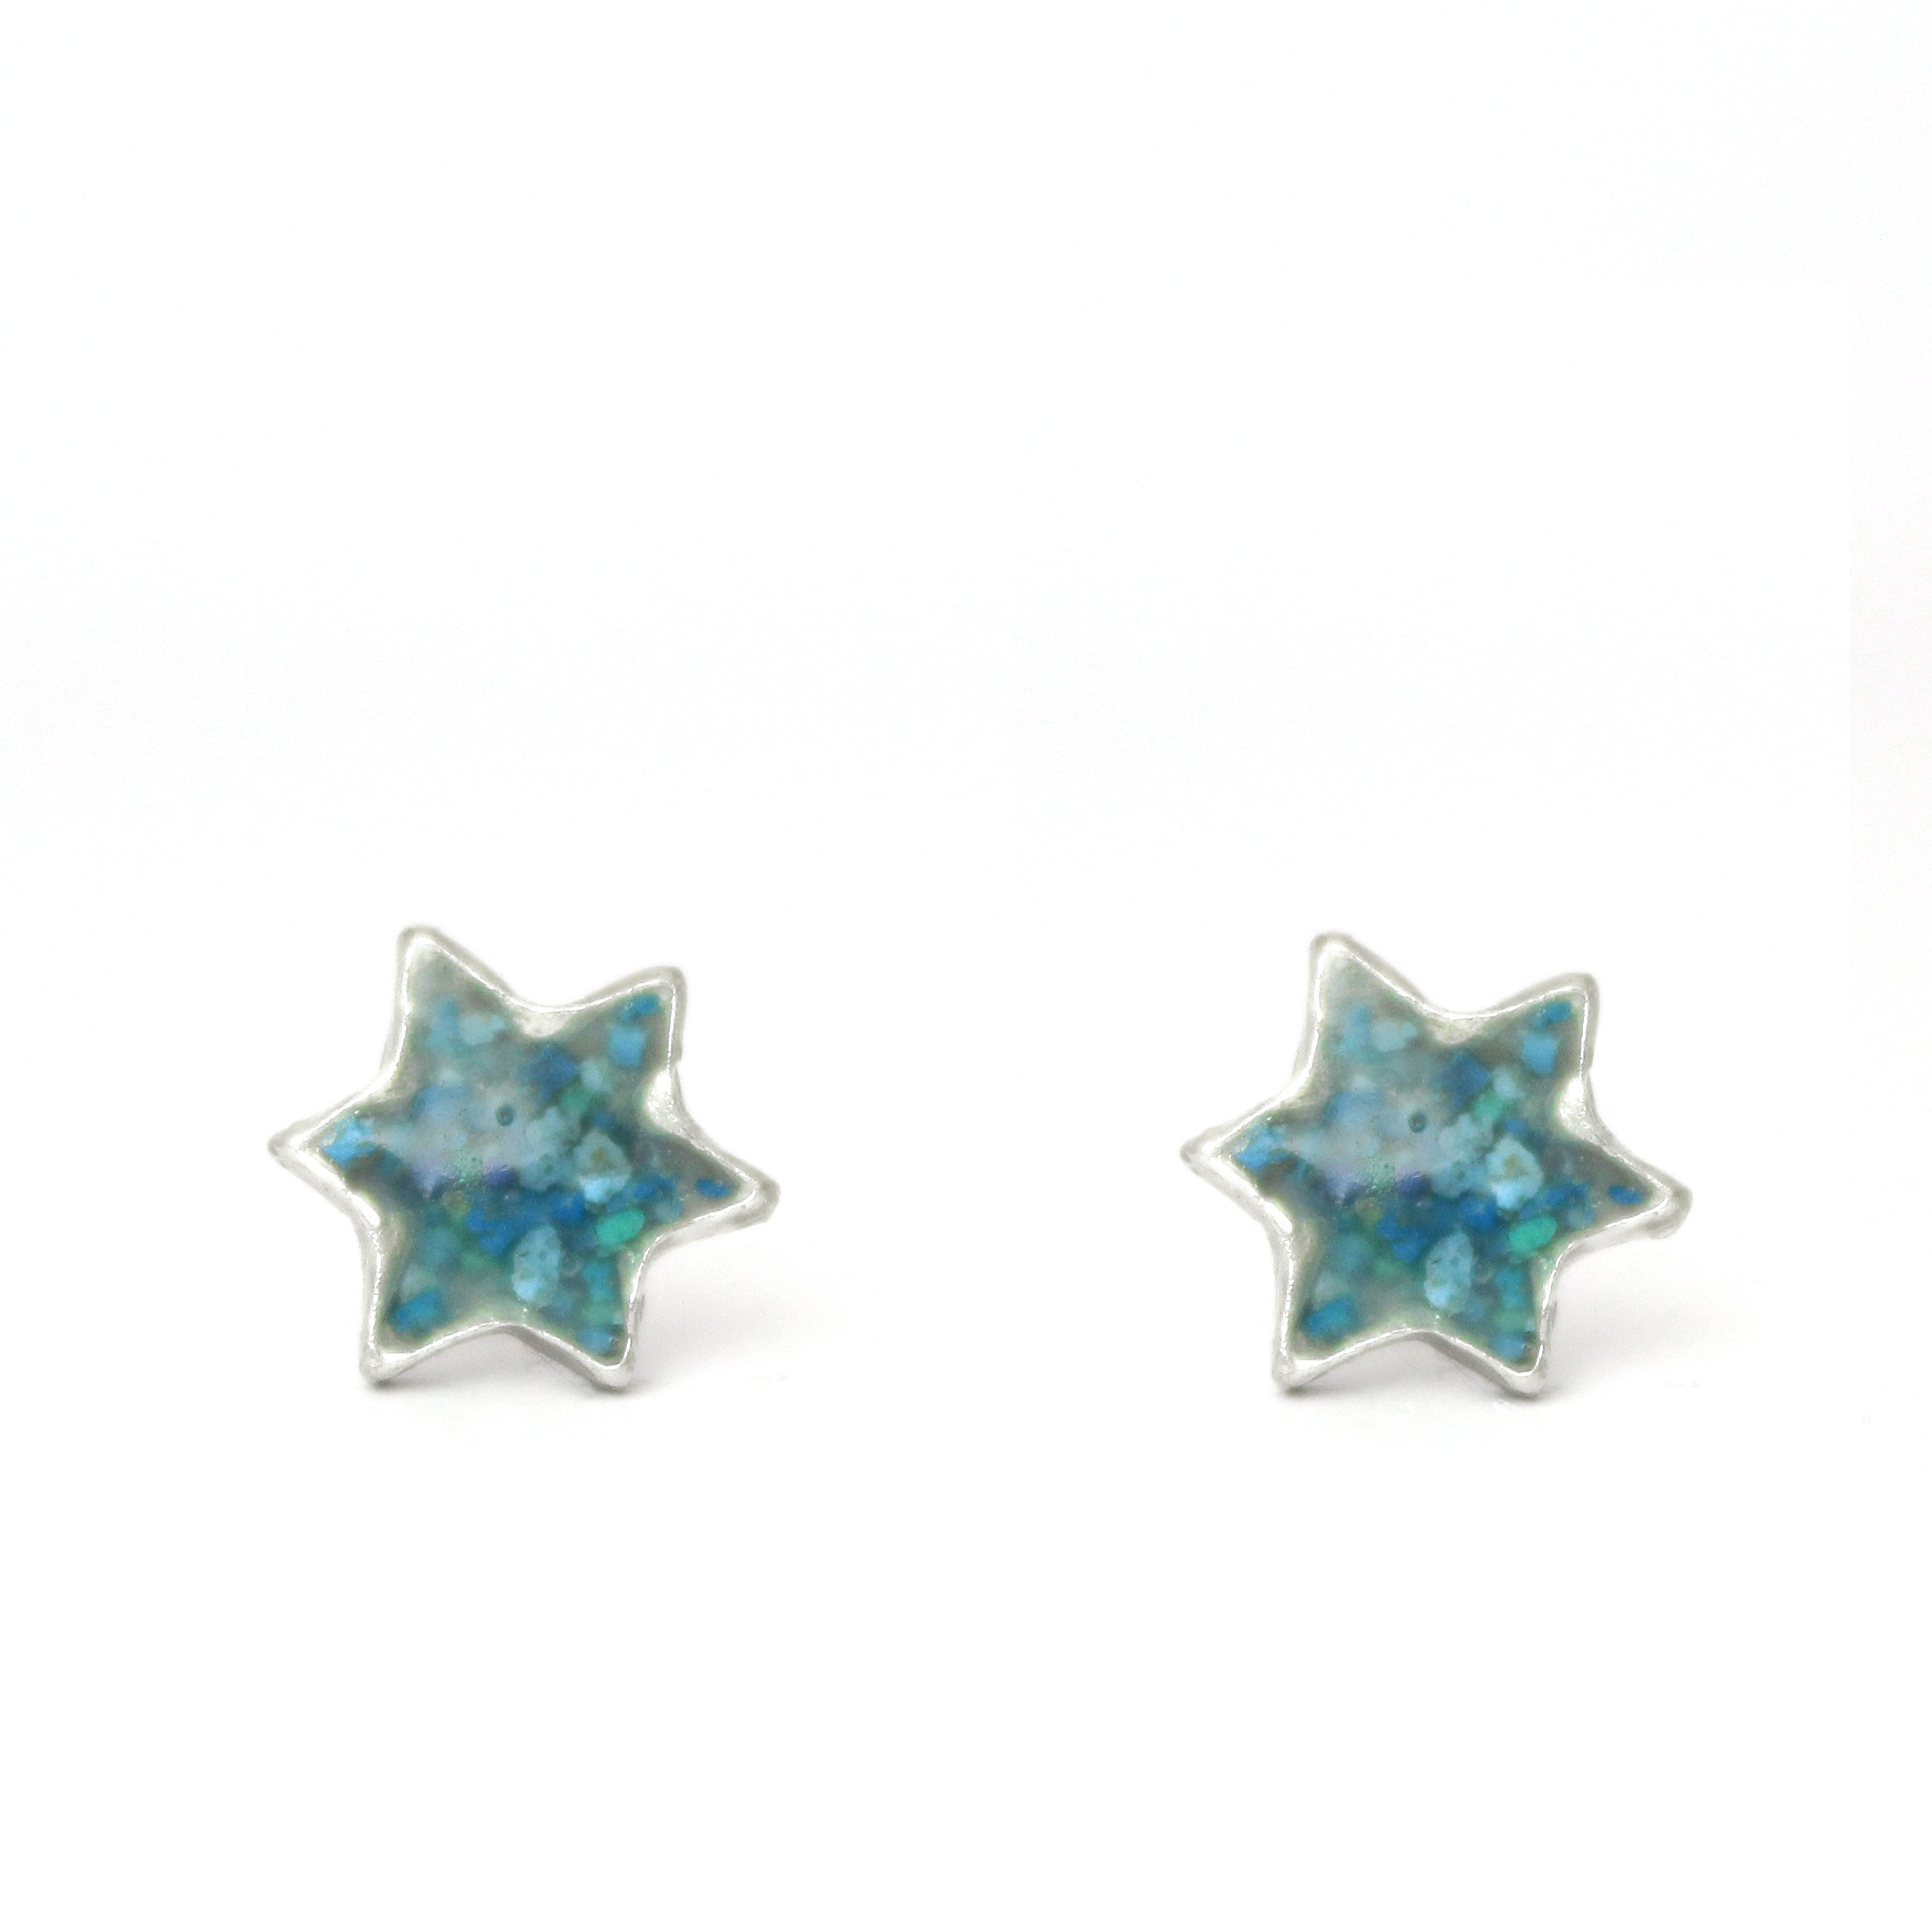 Turquoise Star Of David Silver & Stones Pierce Earrings - Shulamit Kanter